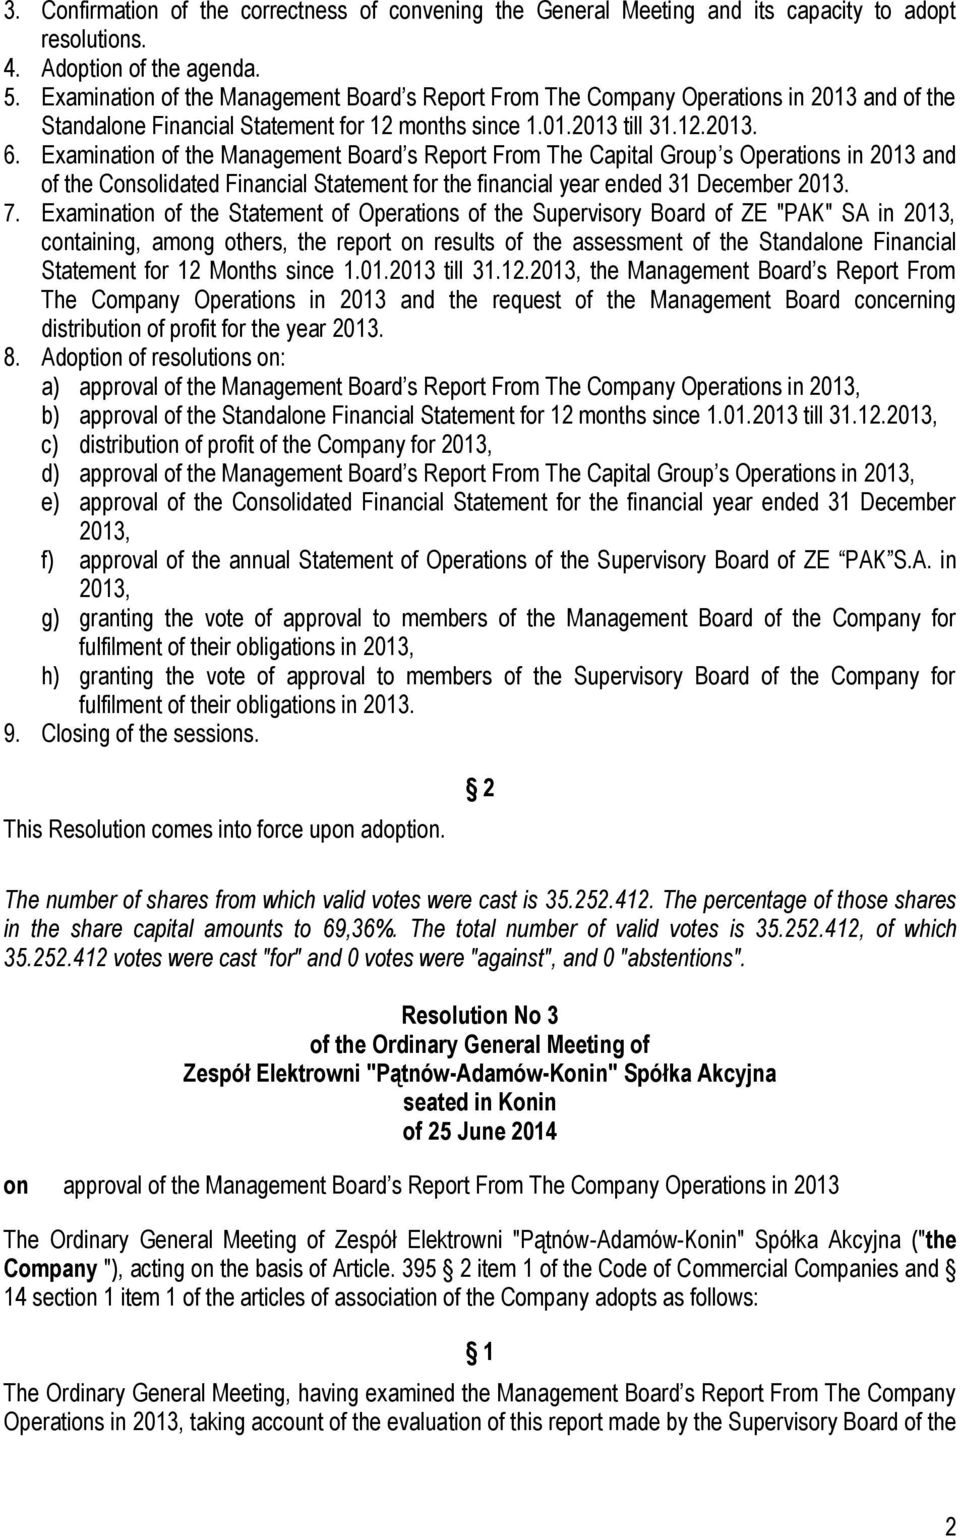 Examination of the Management Board s Report From The Capital Group s Operations in 2013 and of the Consolidated Financial Statement for the financial year ended 31 December 2013. 7.